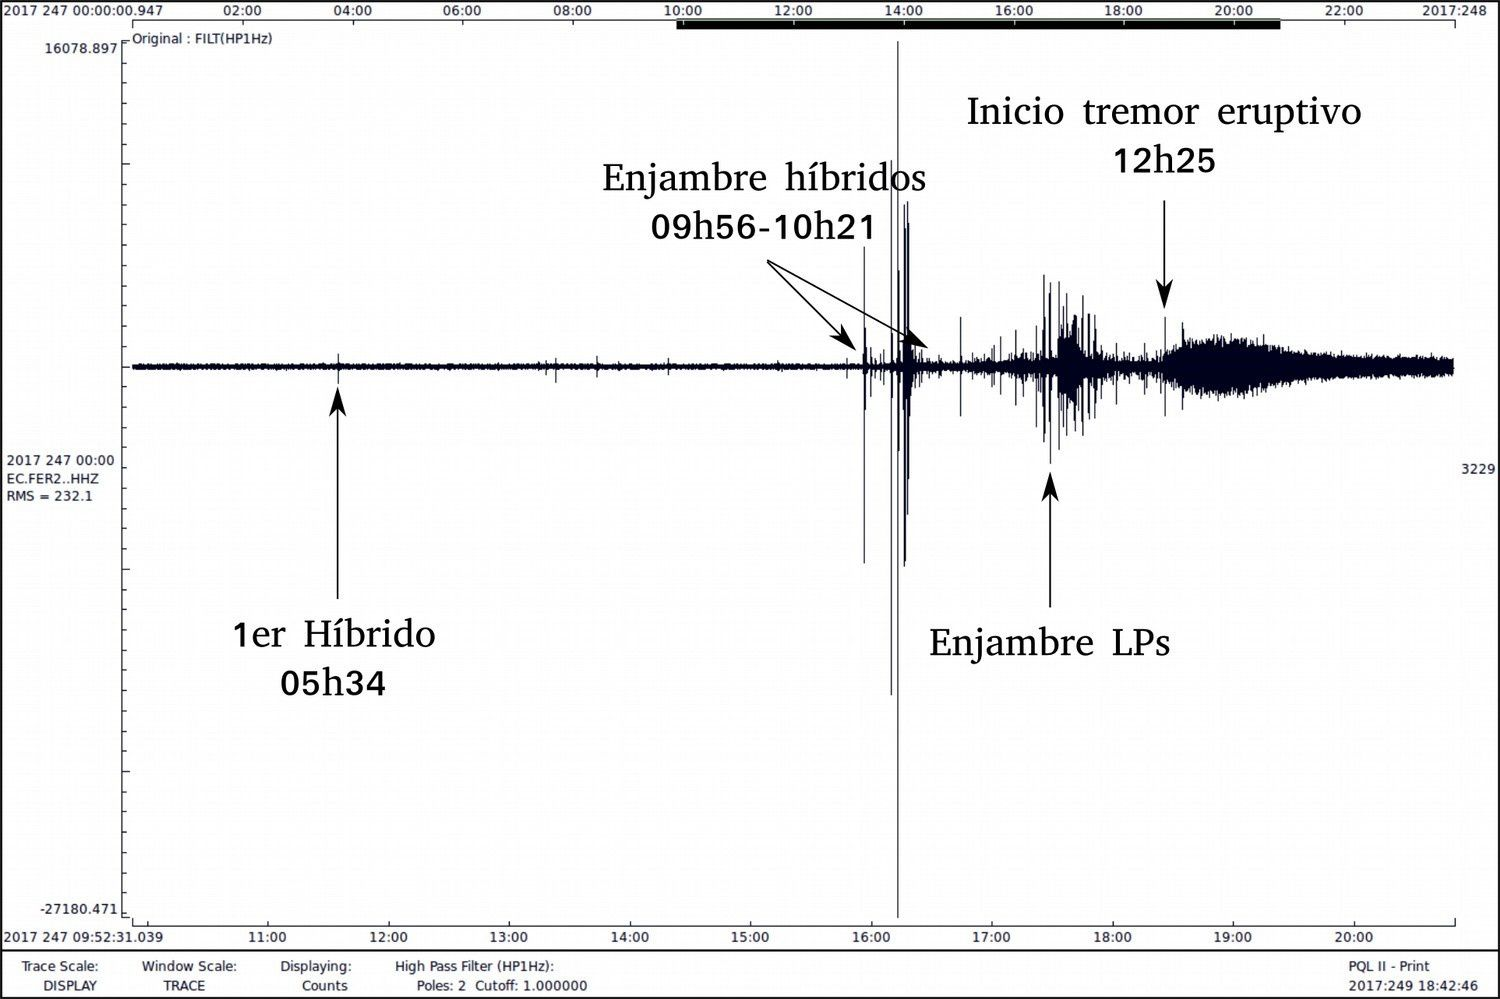 Fernandina - eruption of 04.09.2017 - seismogram of the station FER2, with the chrononogy of the seismic events - evening: IGEPN / Escala temporal in UTC / Fuente Jean Battaglia, Universidad Clermont-Auvergne)